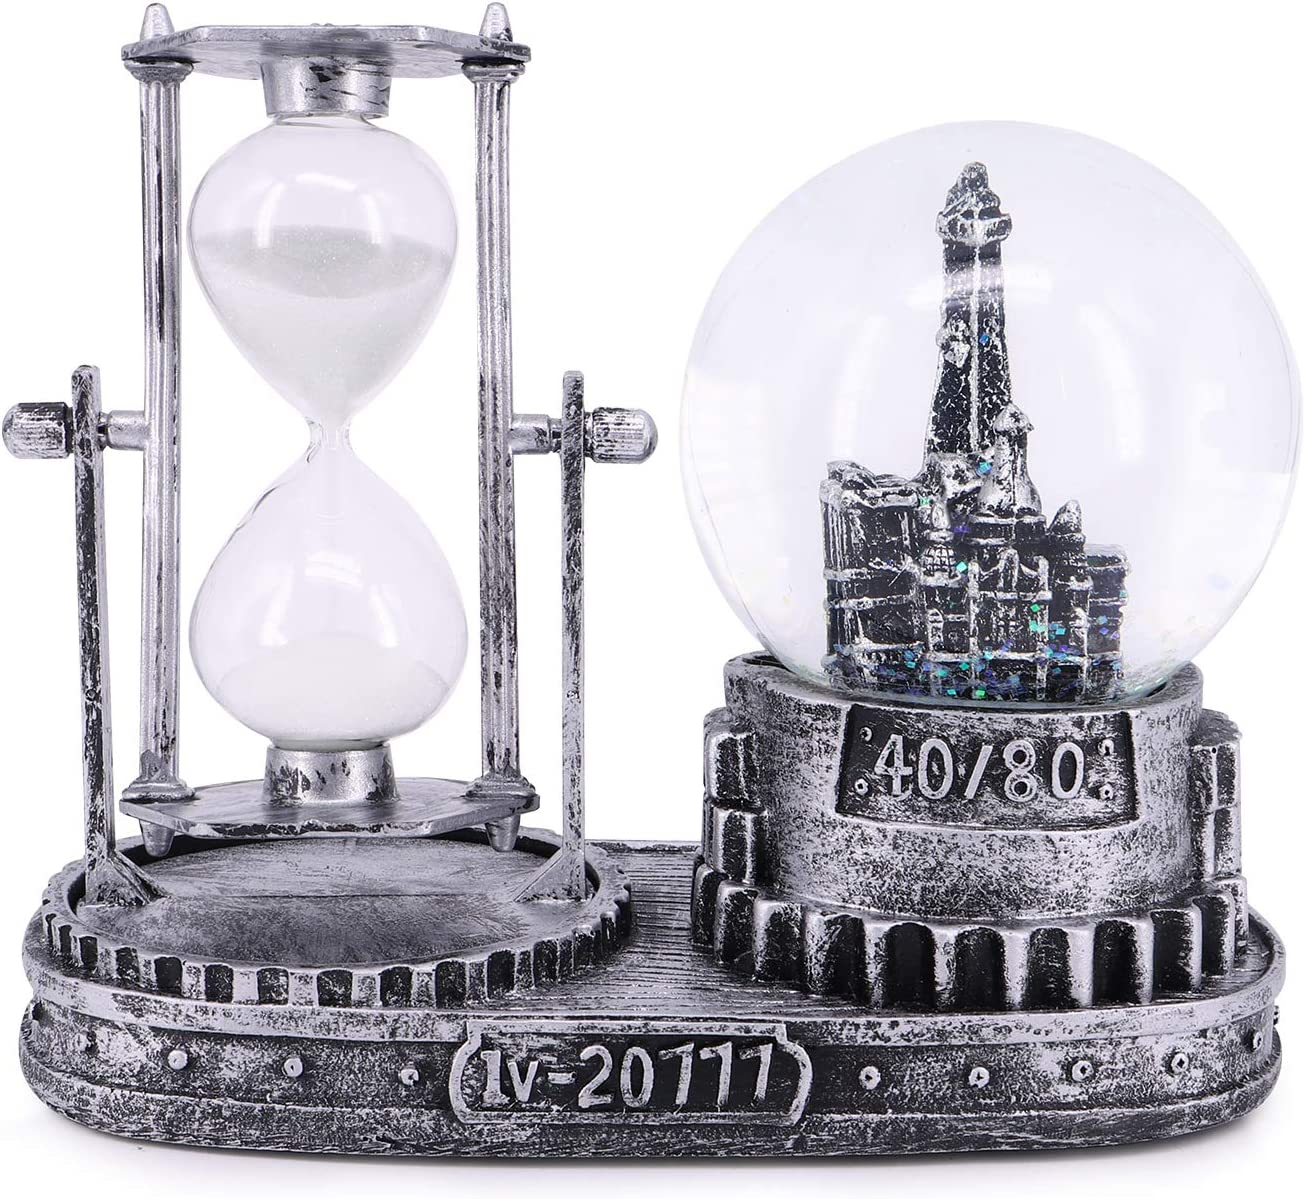 QTKJ Paris Snow Musical Globe with Color Changing LED Lights, Eiffel Tower Snow Globe with Square Base, Retro Souvenirs Collection (Silver 40/80, Hourglass)